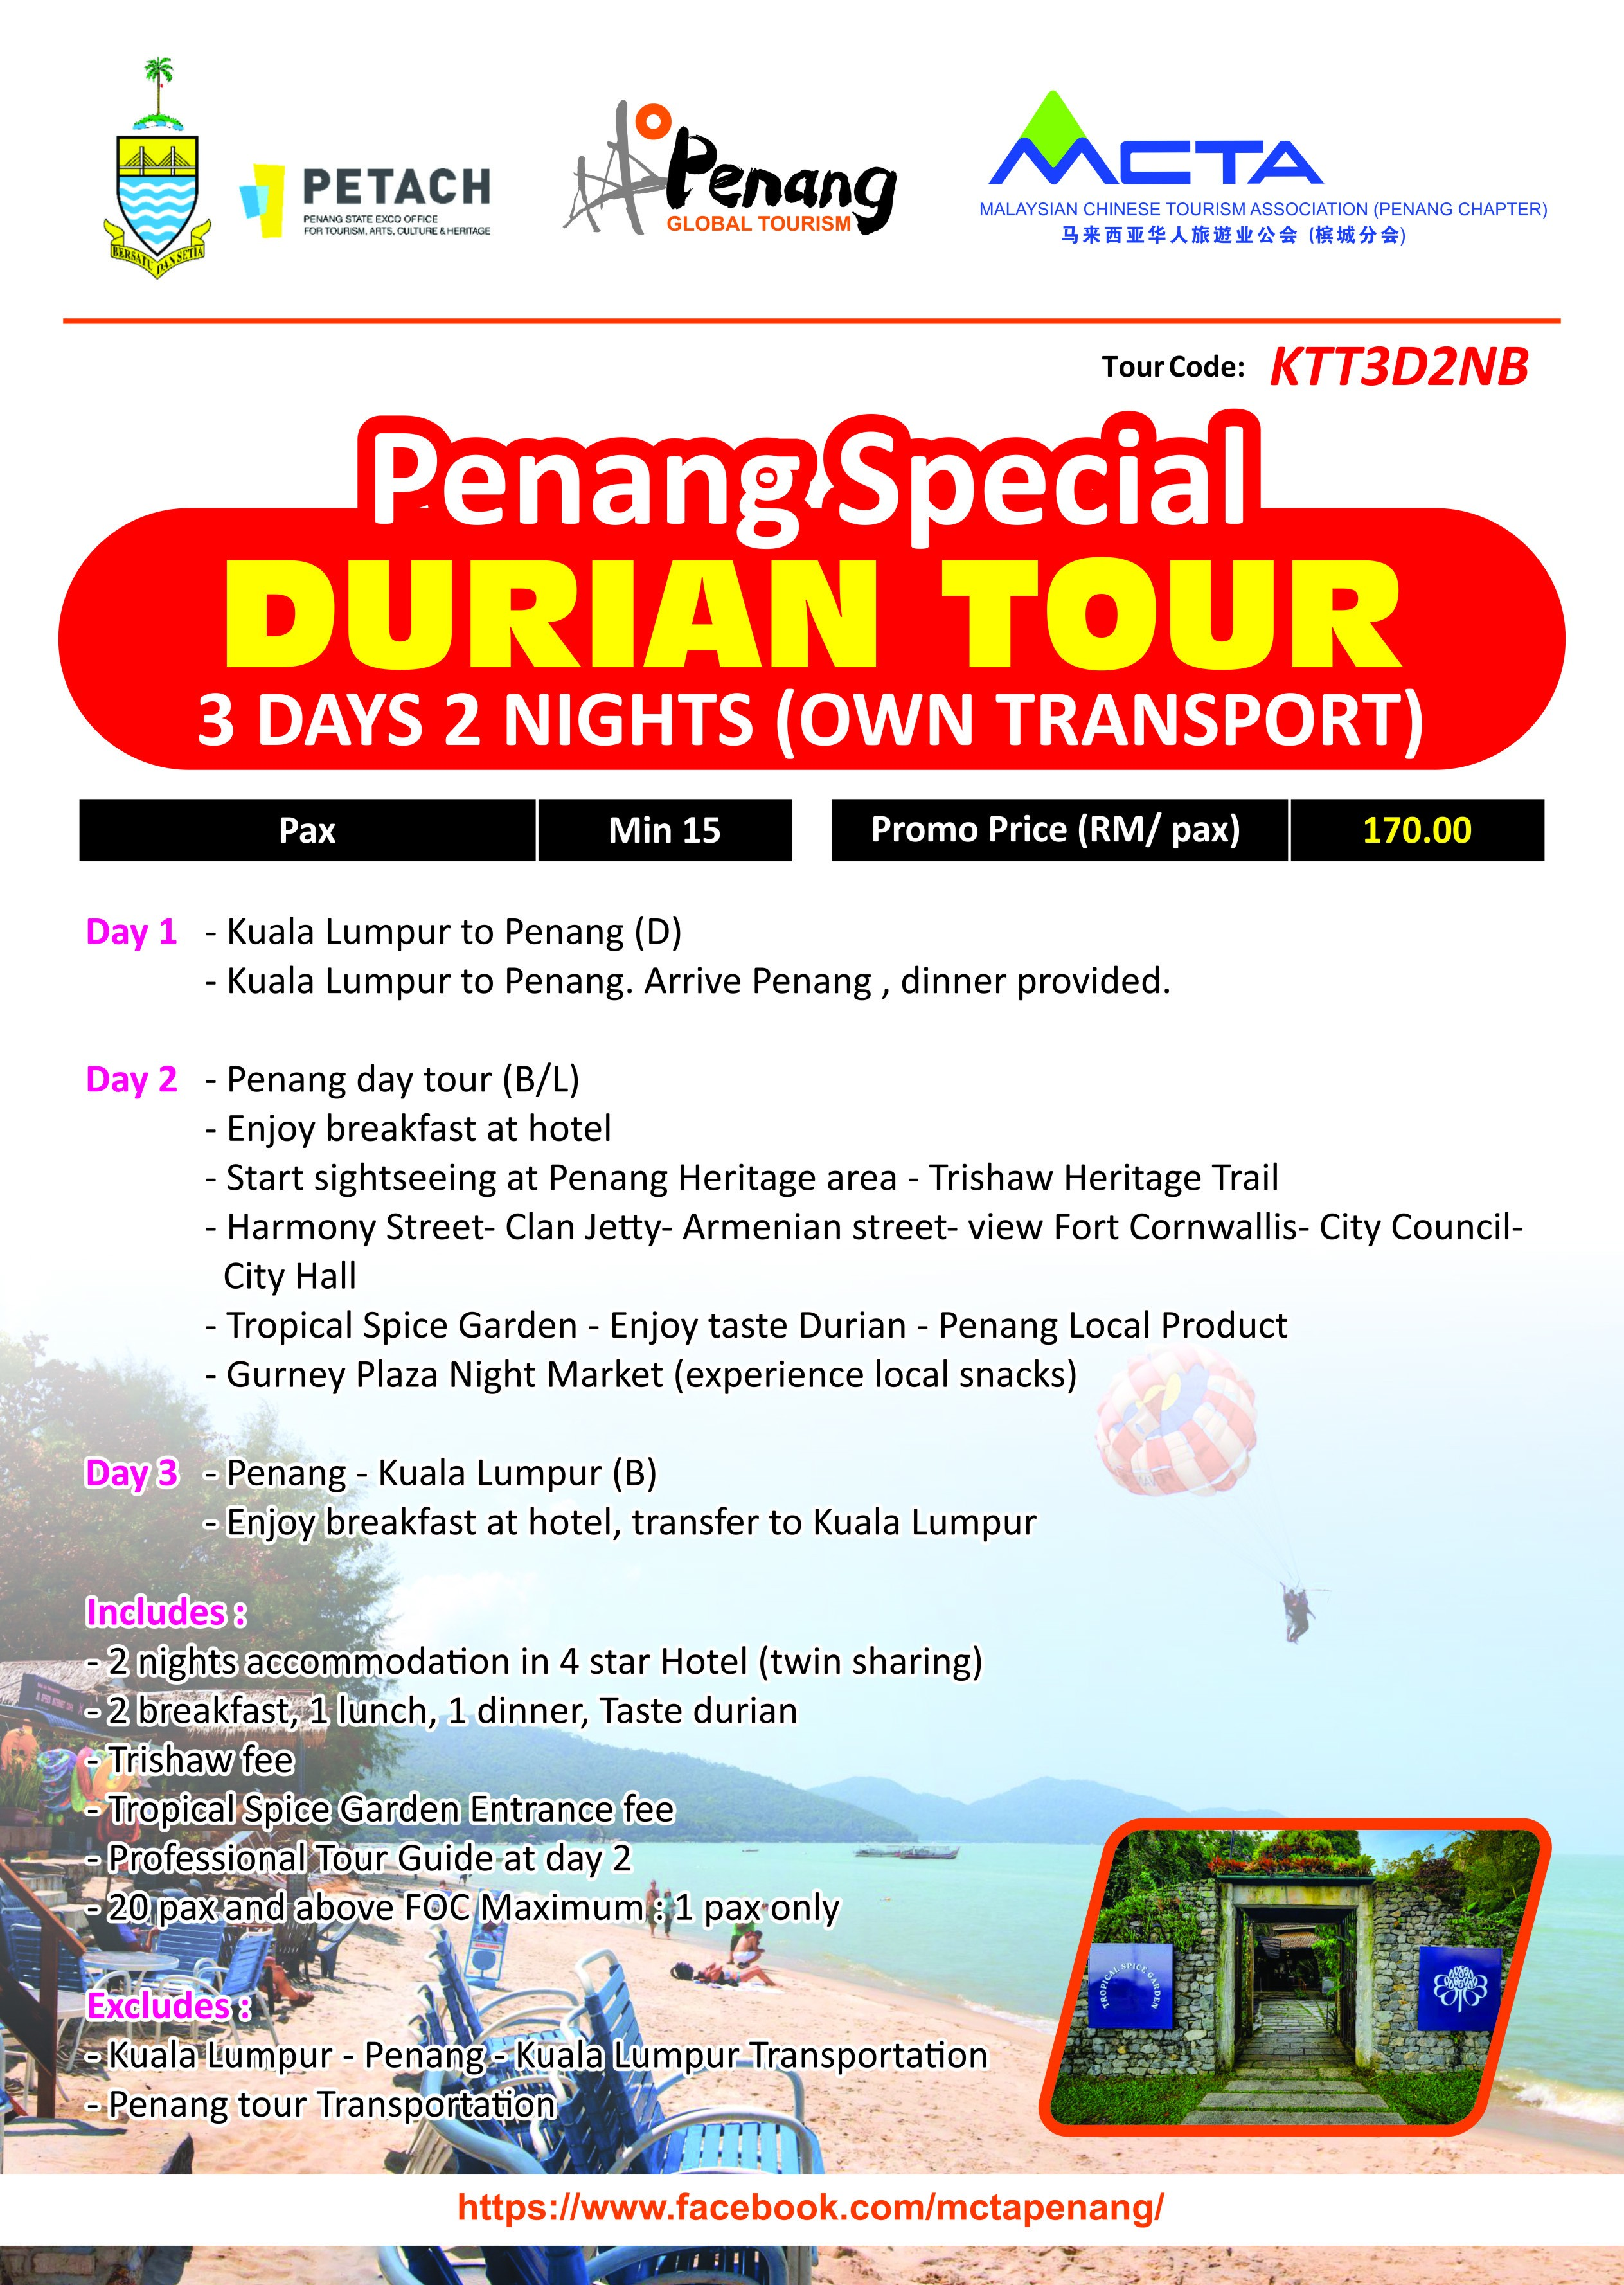 Penang Special Durian Tour - 3 Days 2 Nights (Own Transport)